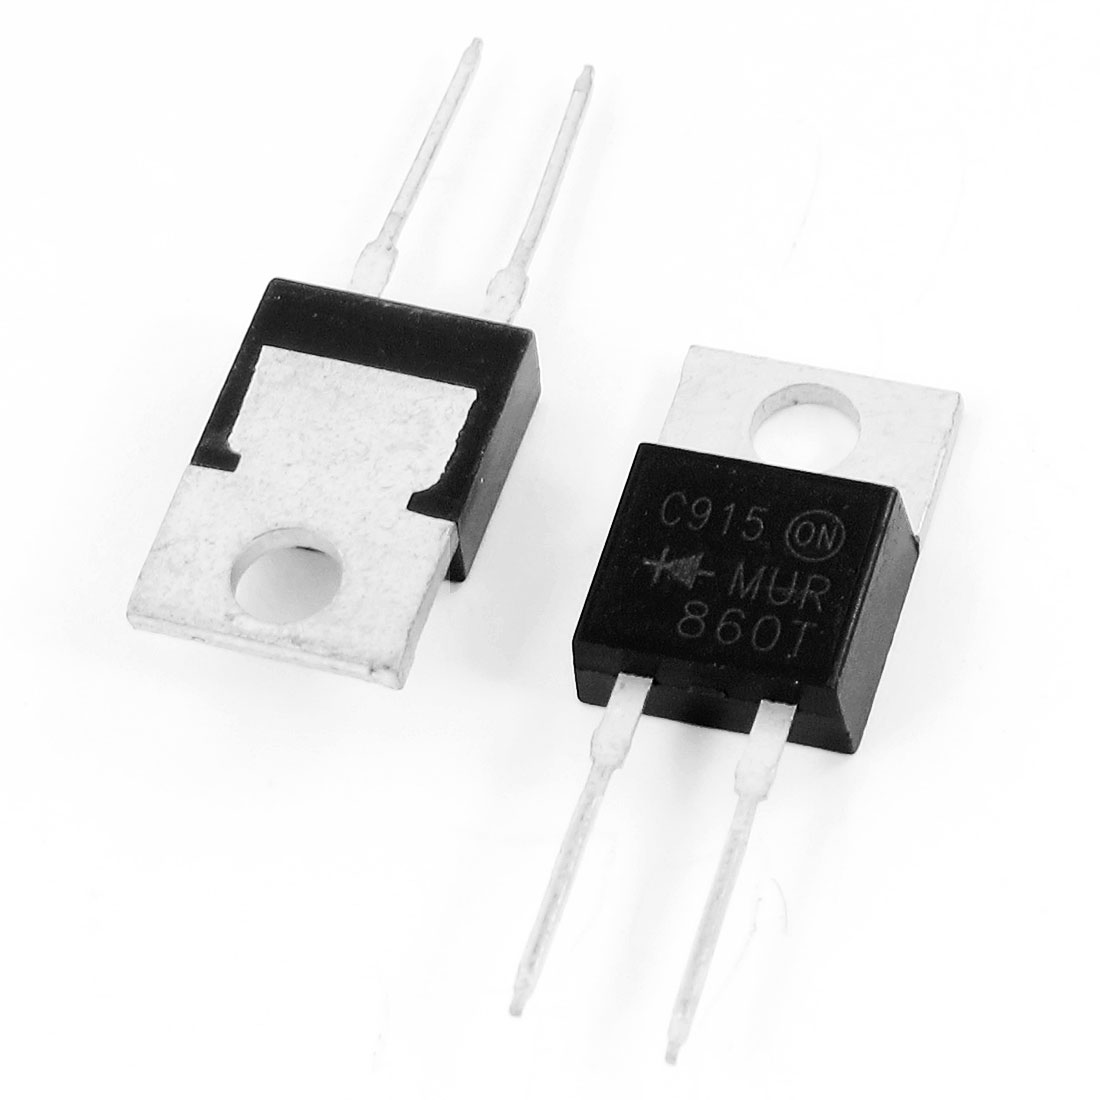 2 Pcs MUR860 600V 8Amp High Switching Speed Silicon Transistor